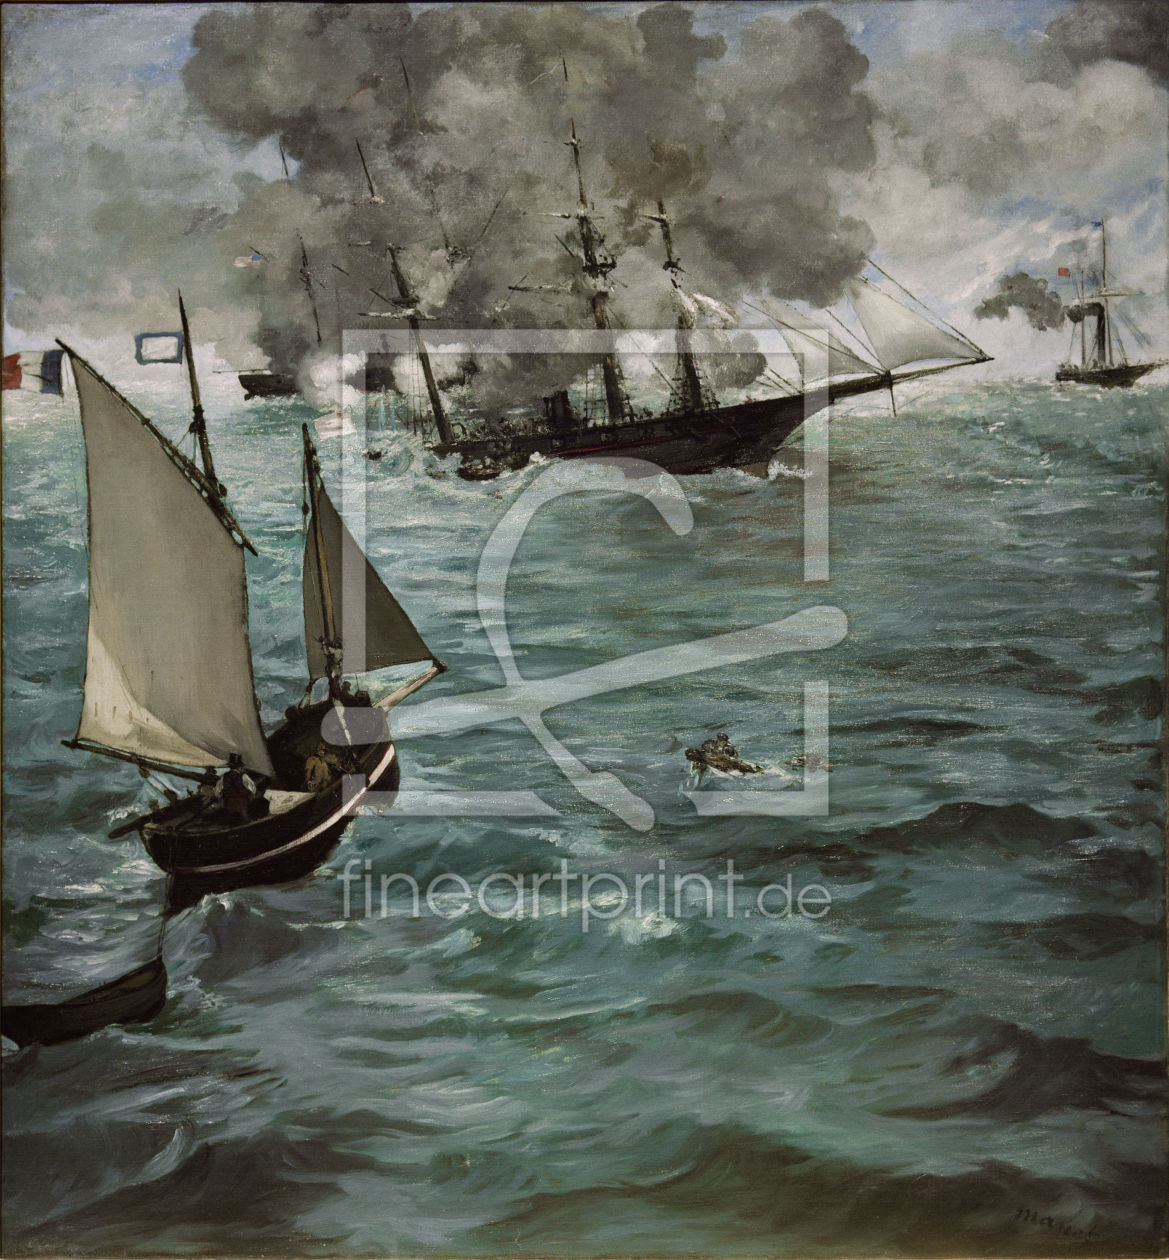 Bild-Nr.: 30004446 Manet / Battle of Kearsarge and Alabama erstellt von Manet, Edouard